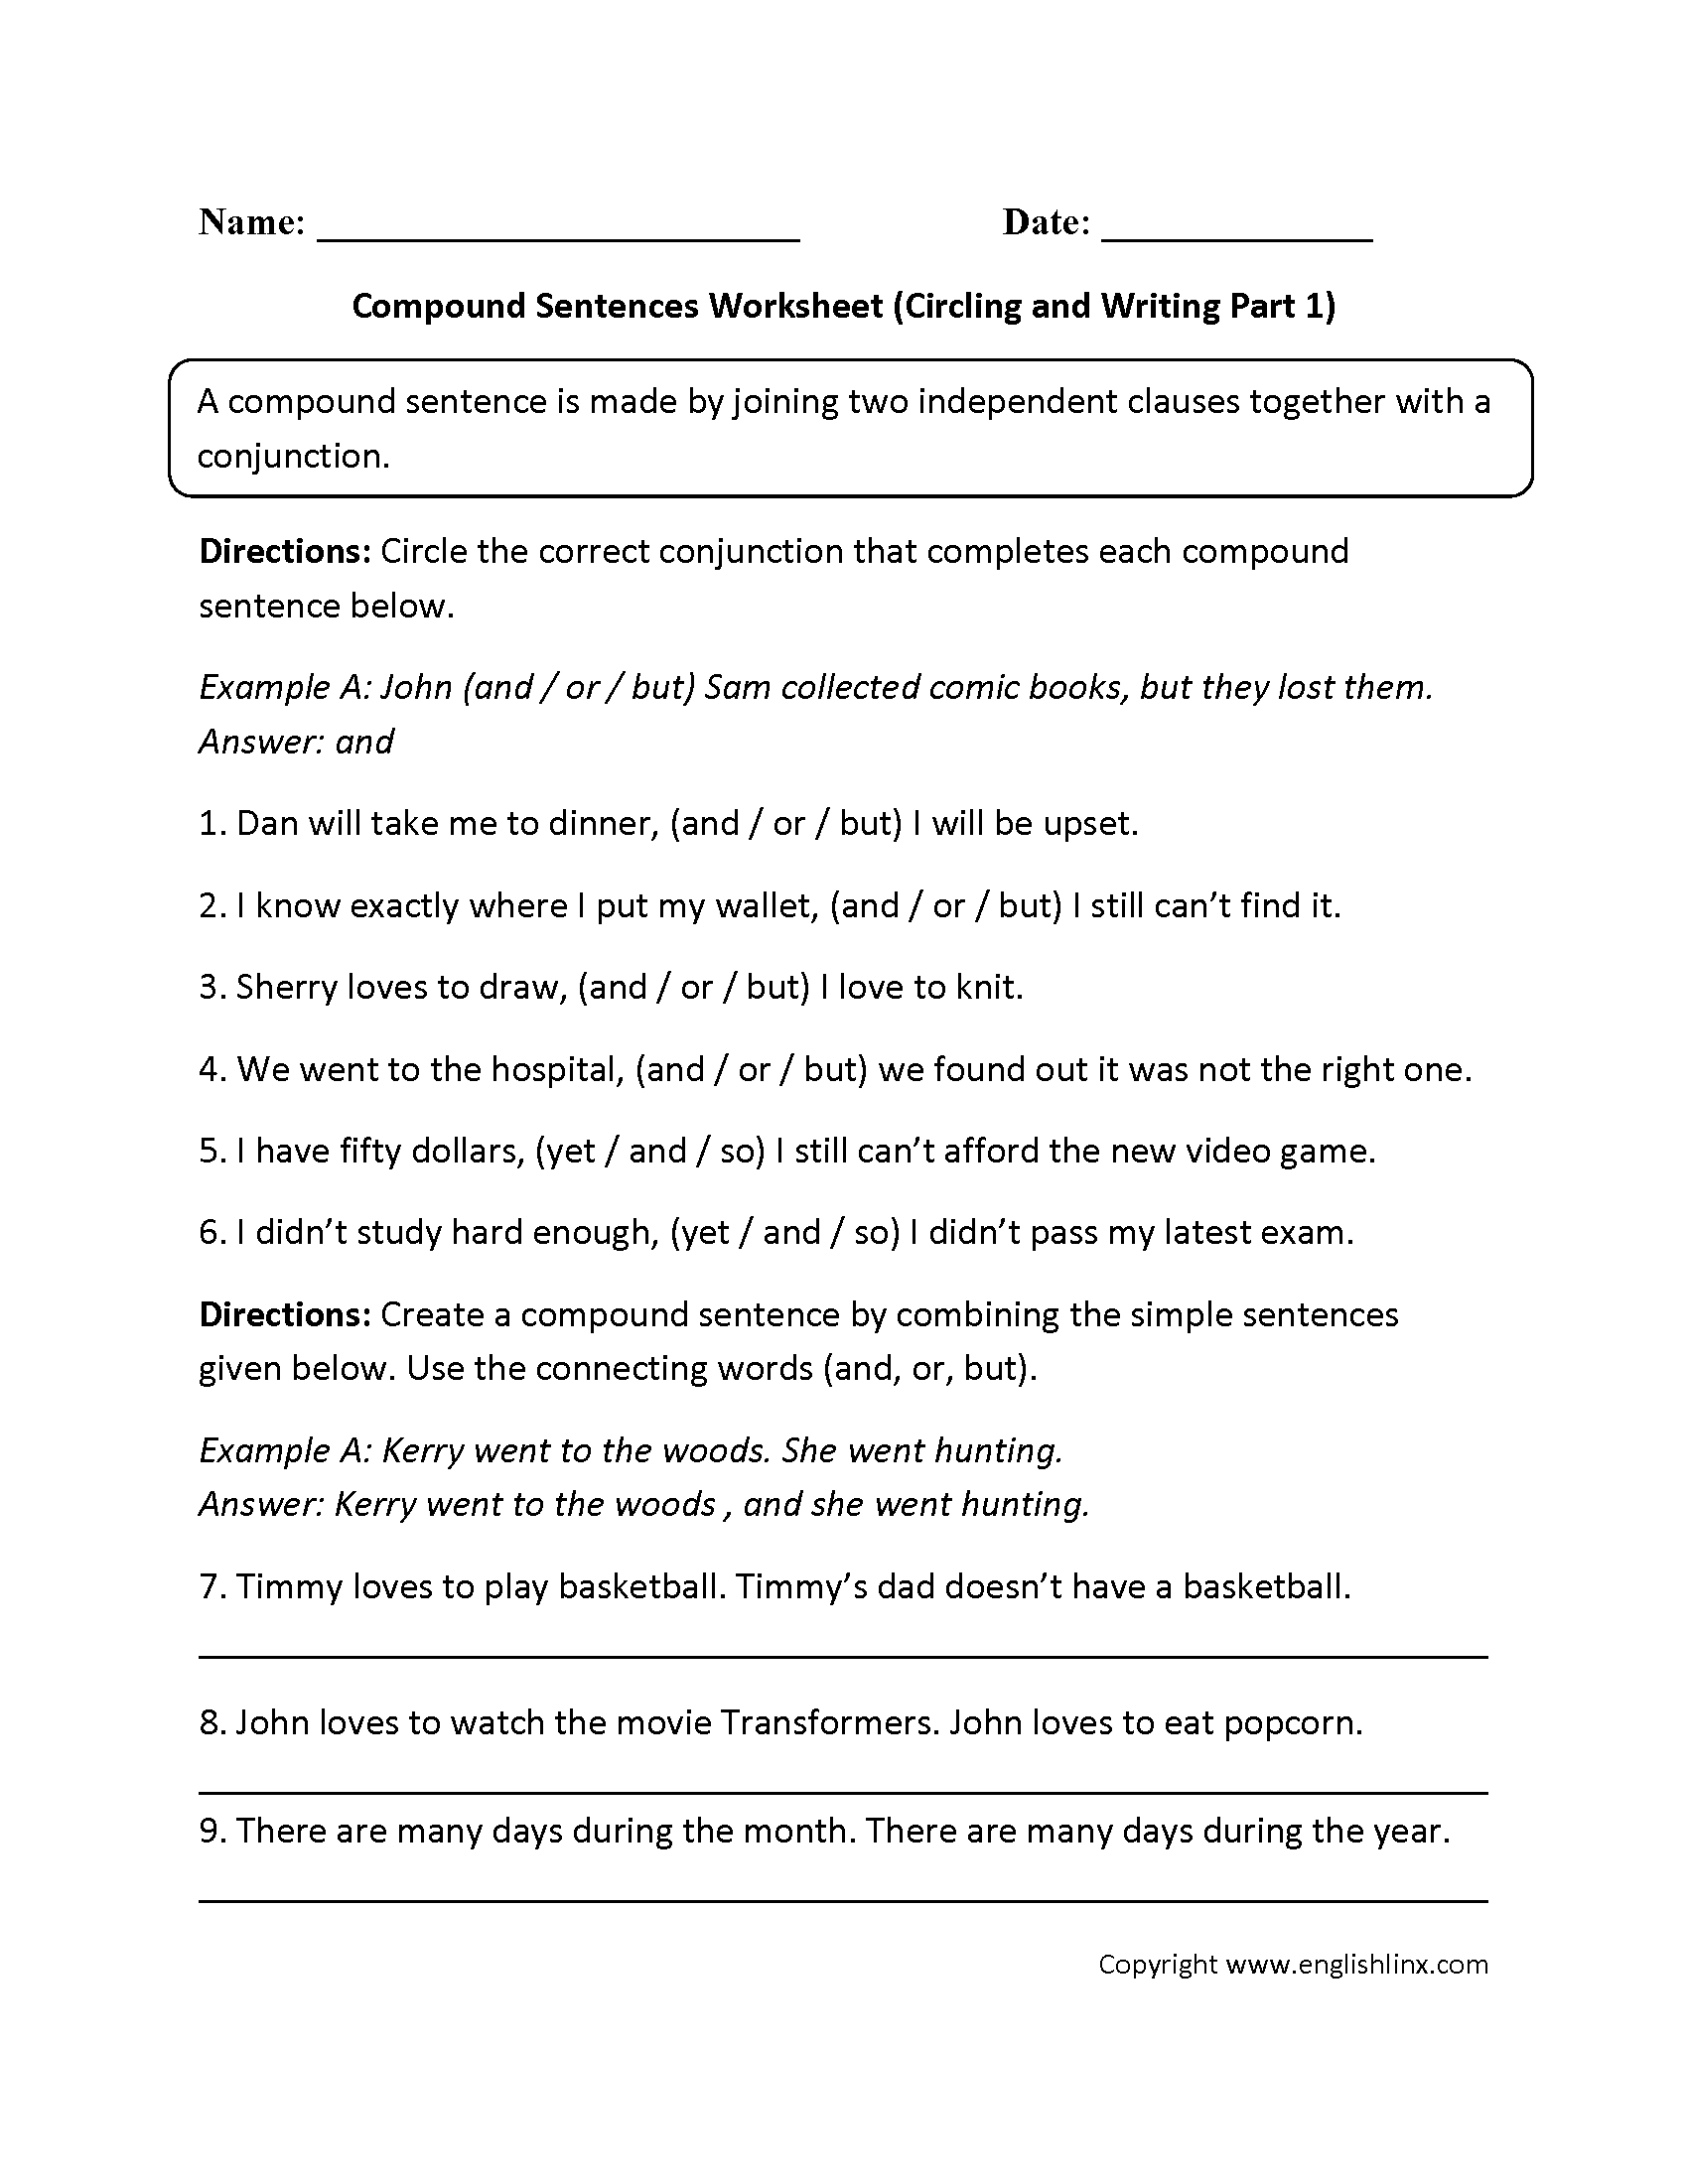 Worksheets Compound Sentences Worksheet sentences worksheets compound worksheet